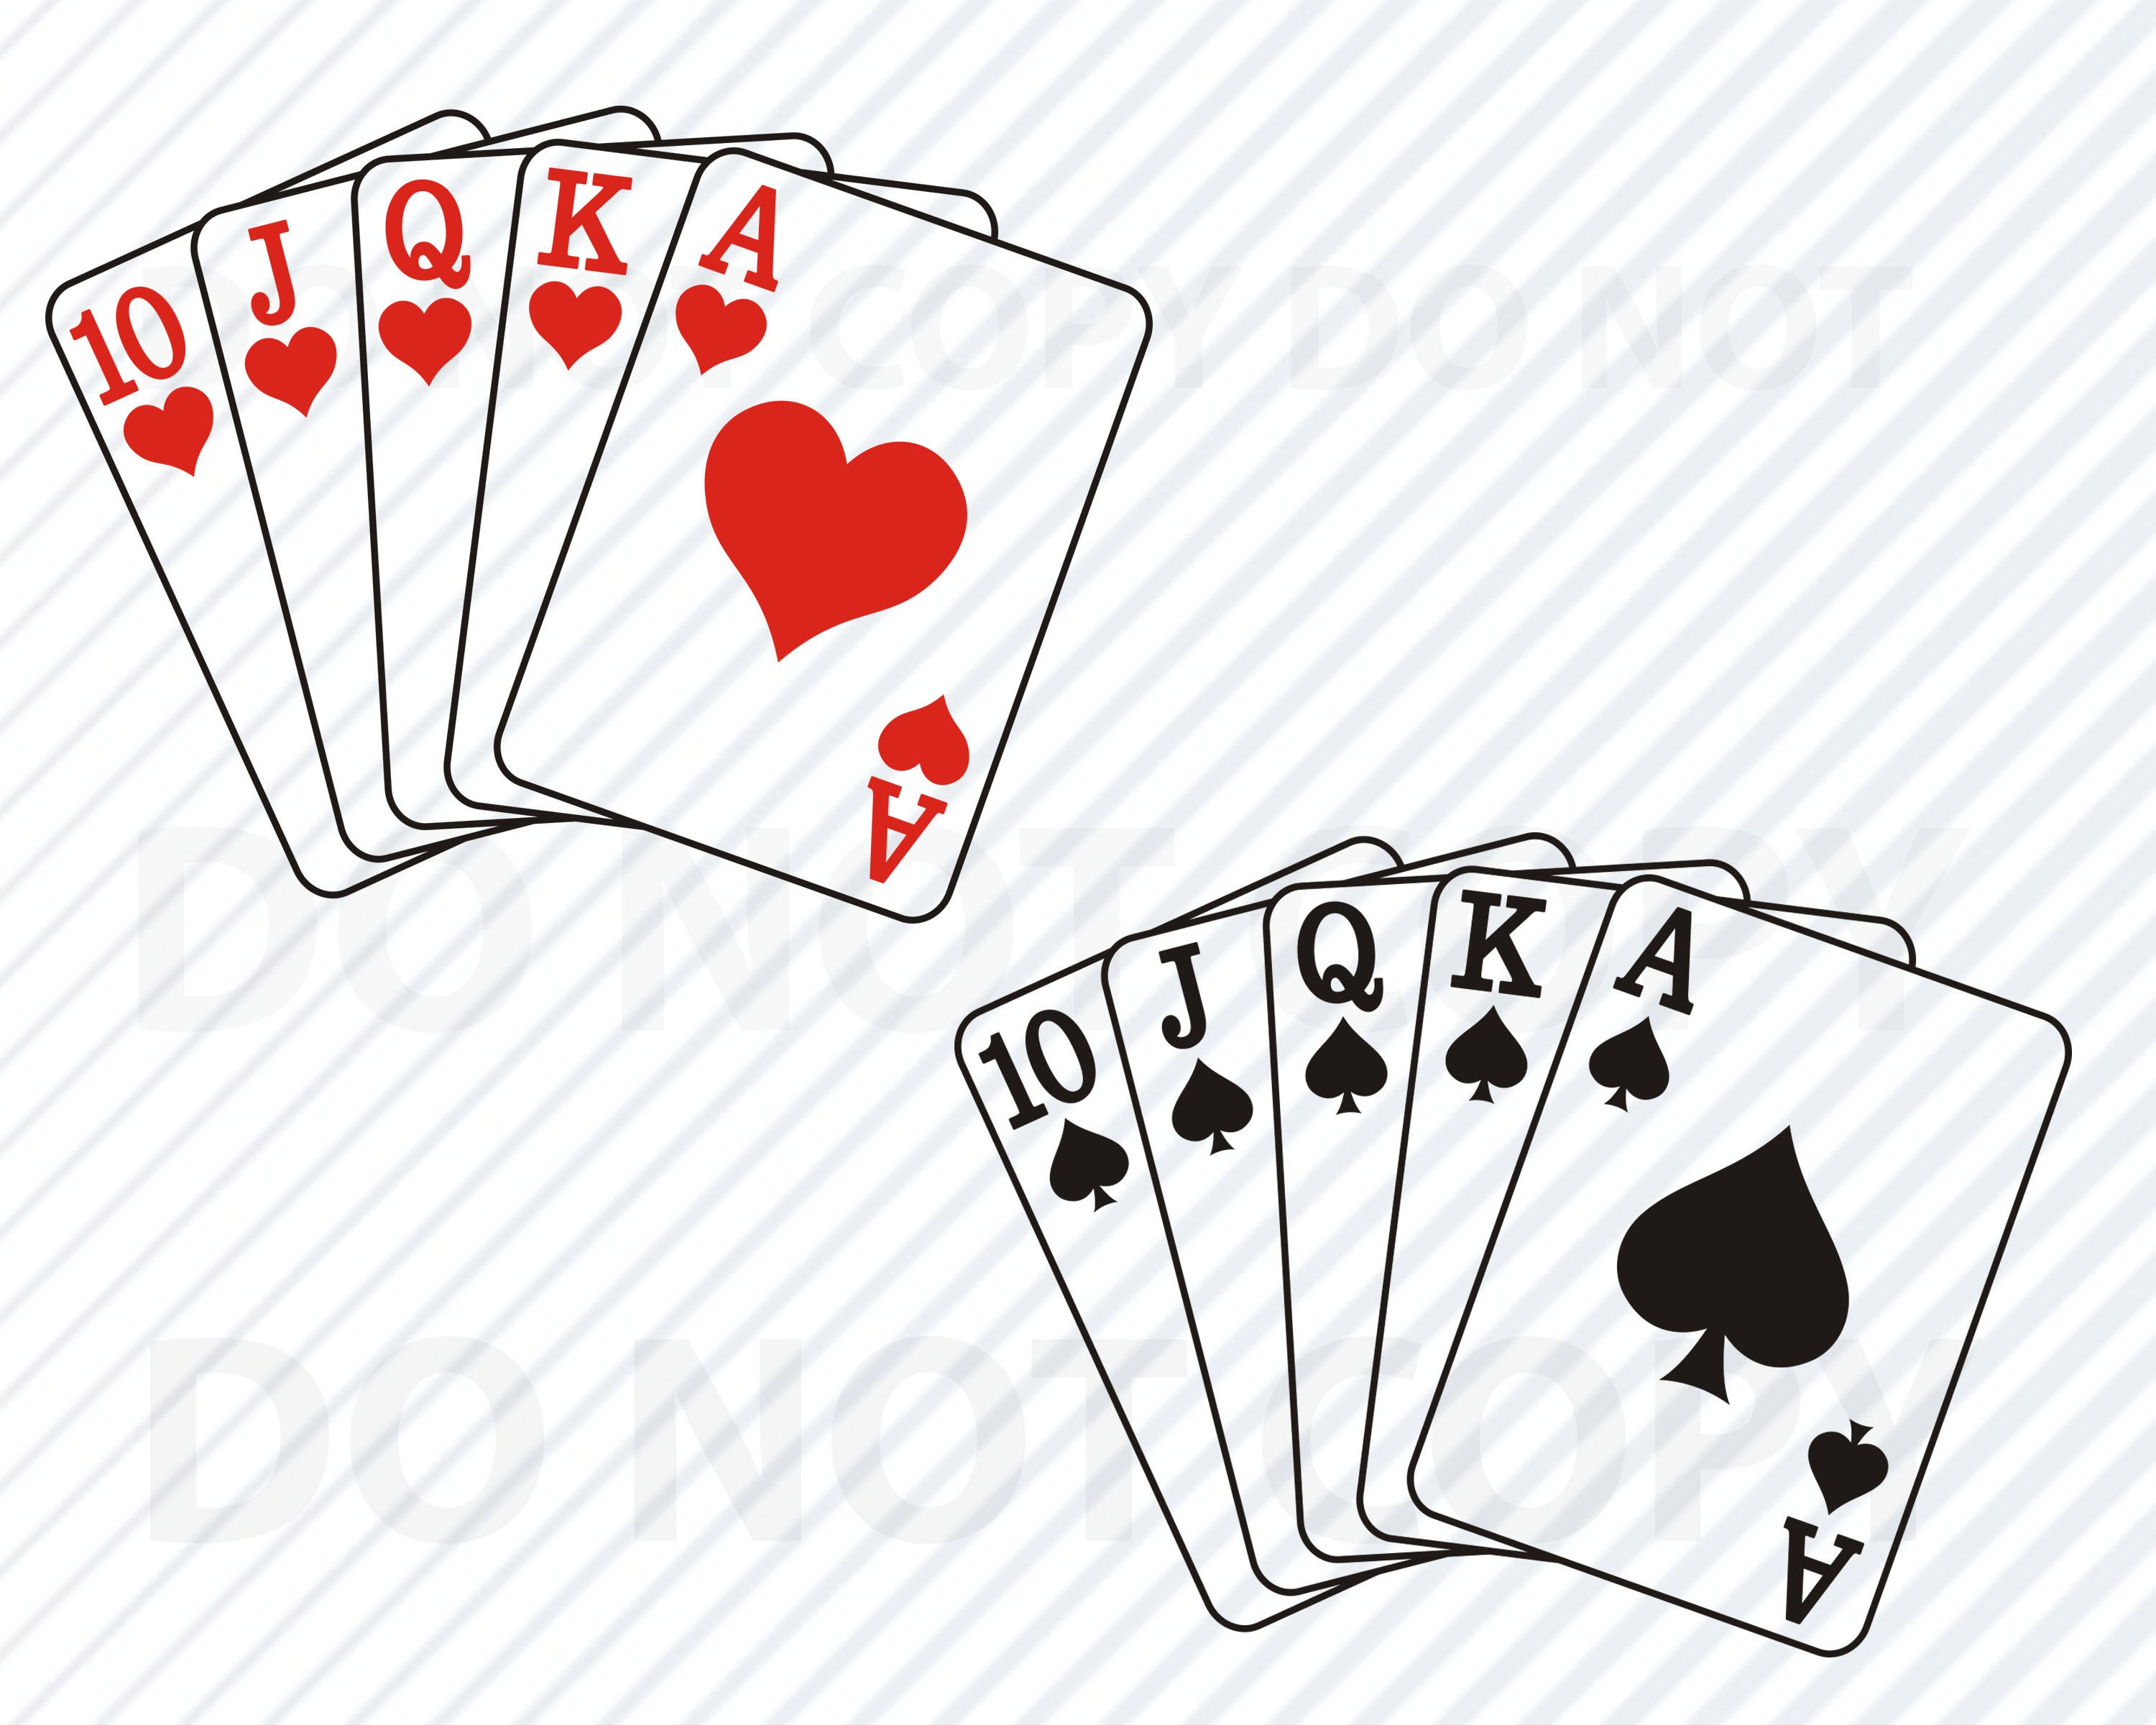 Cards vector images file. Poker clipart svg